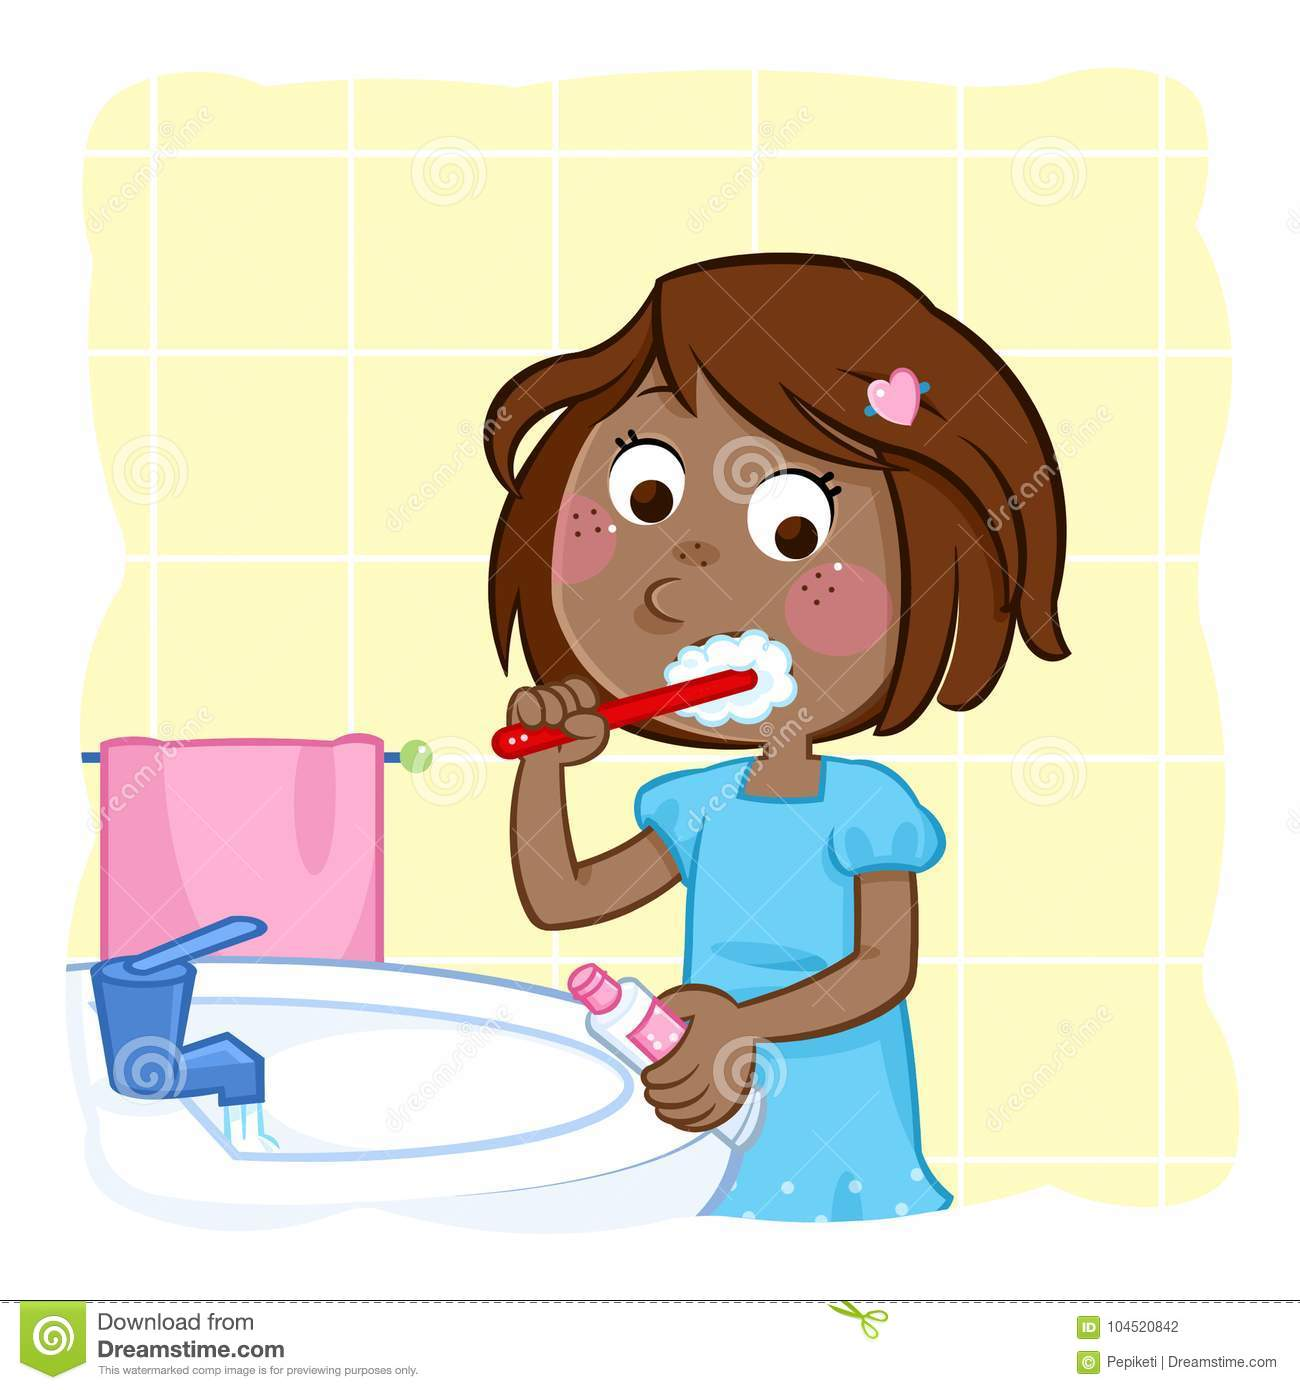 Tooth brushing - little black girl with dark brown hair in the bathroom